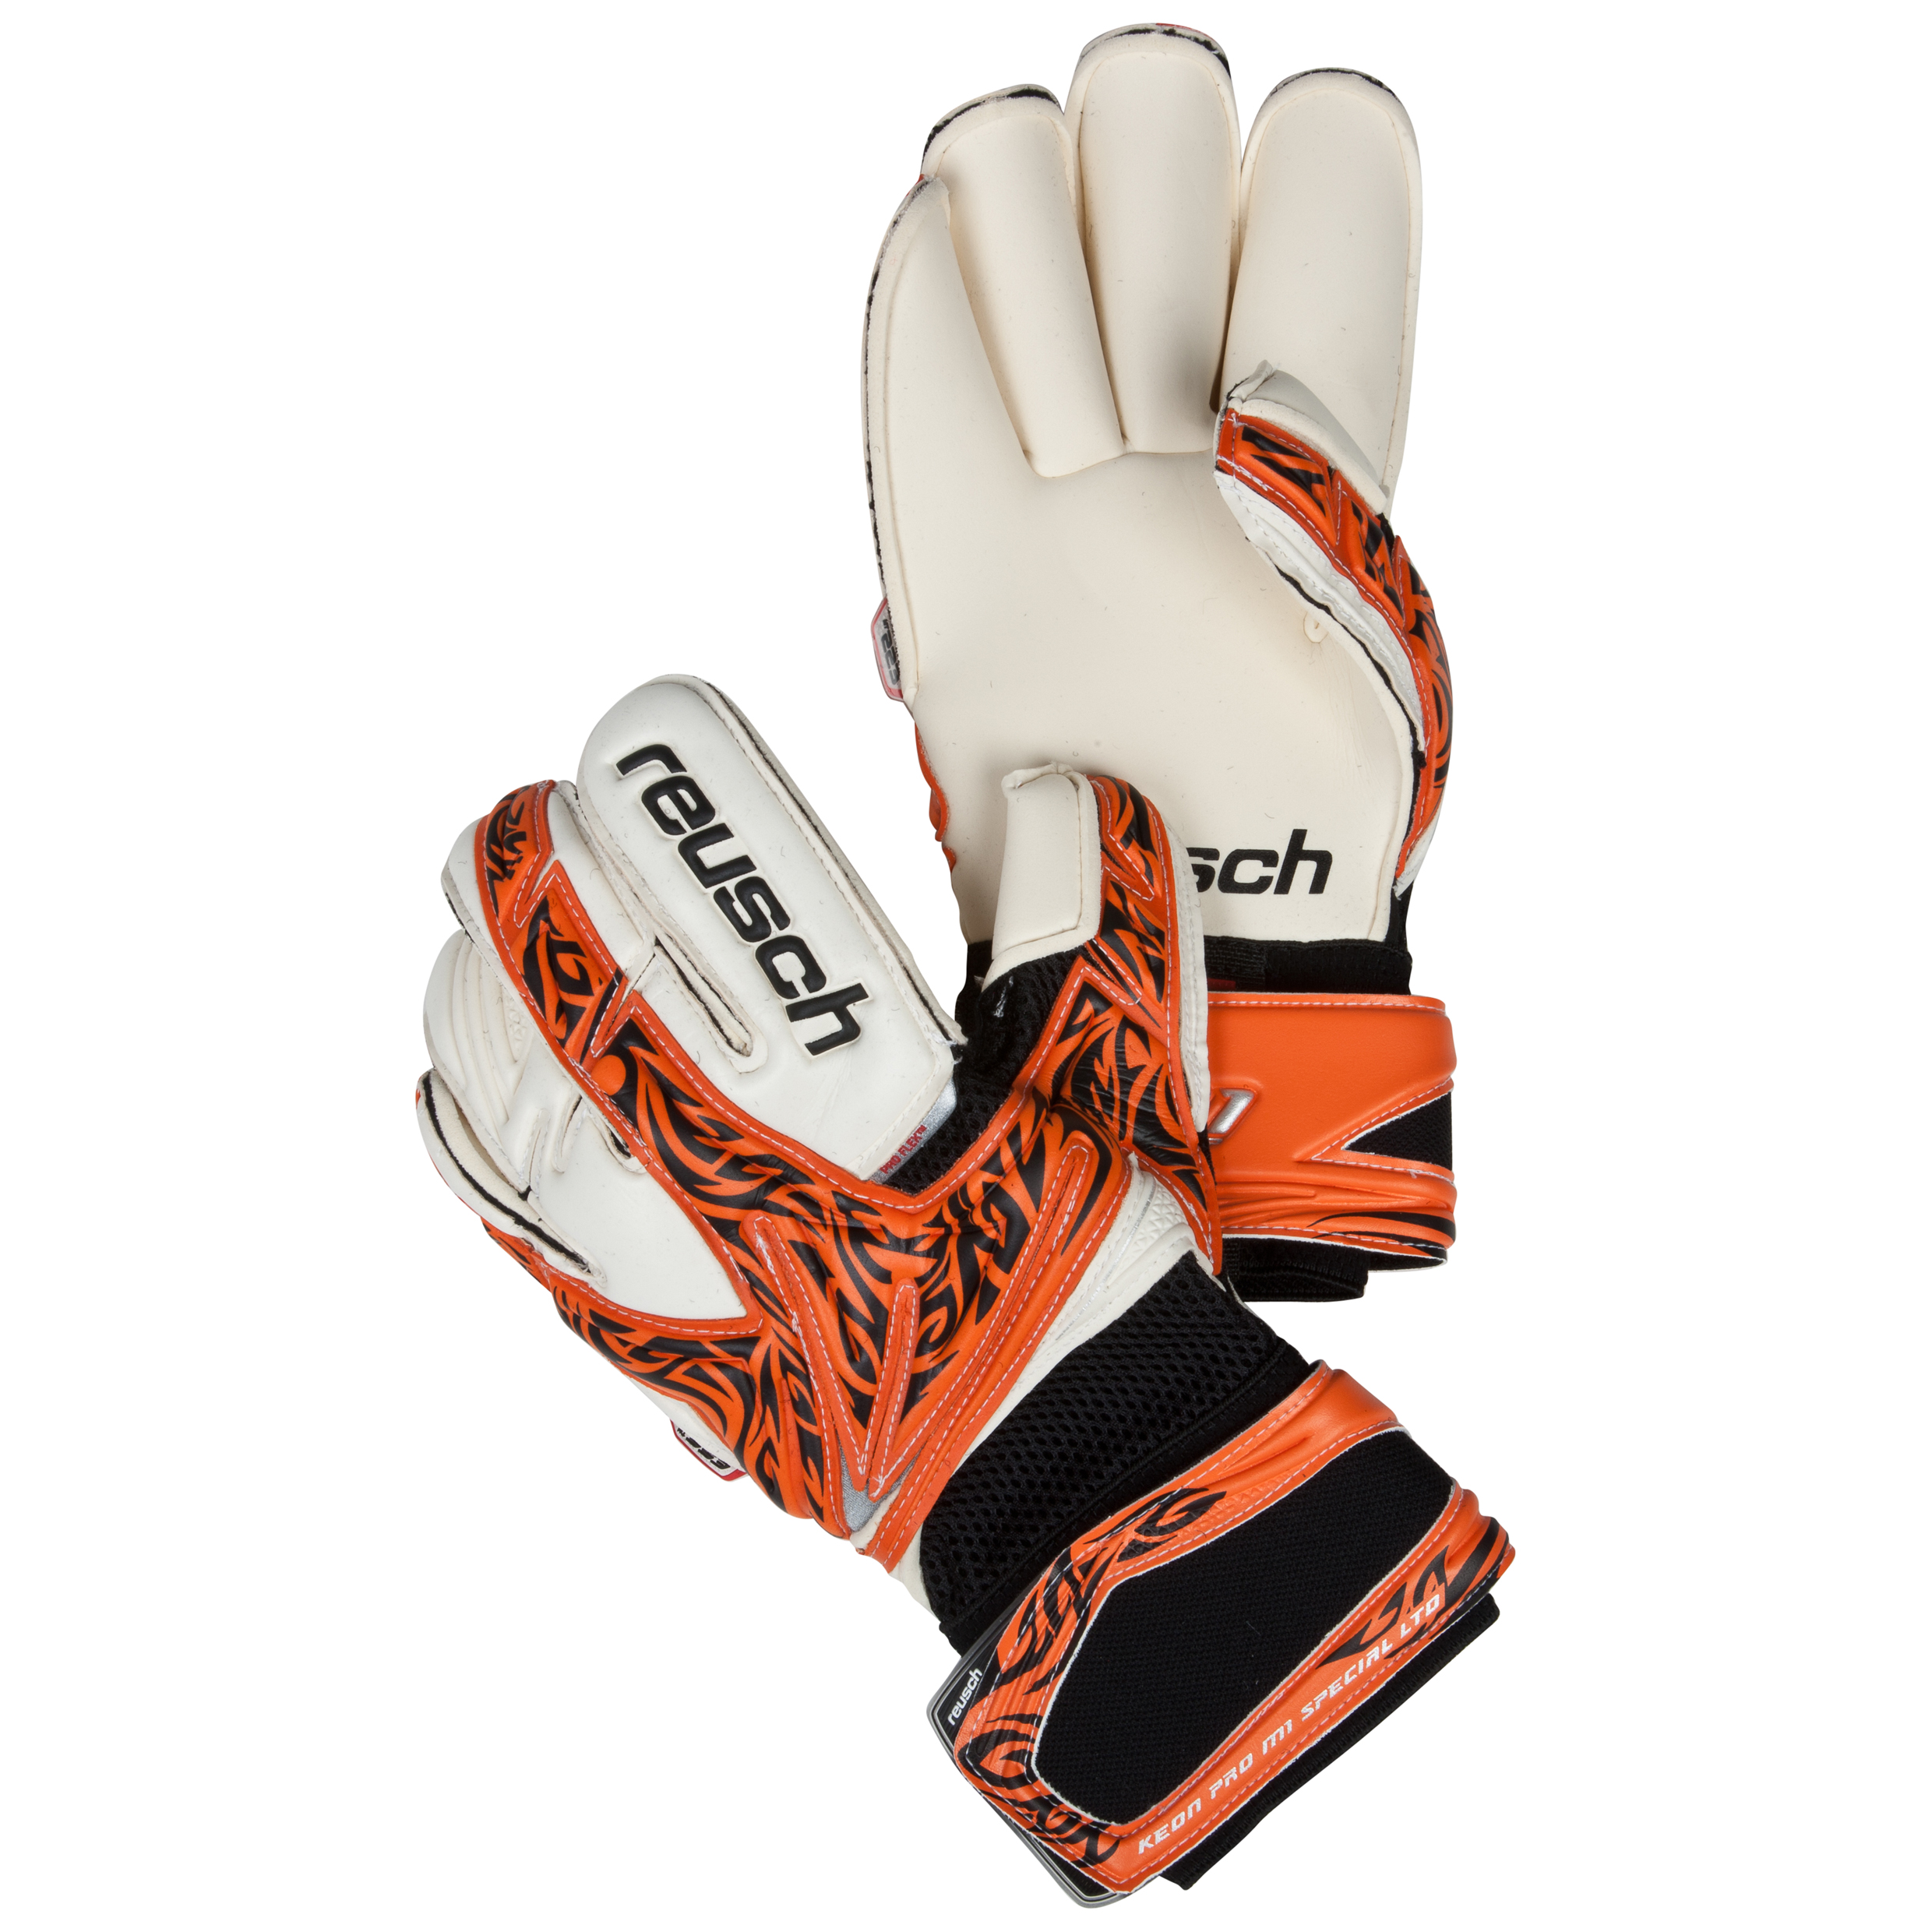 Reusch Keon Pro M1 Special LTD Goalkeeper Gloves-Orange/Black/Ltd